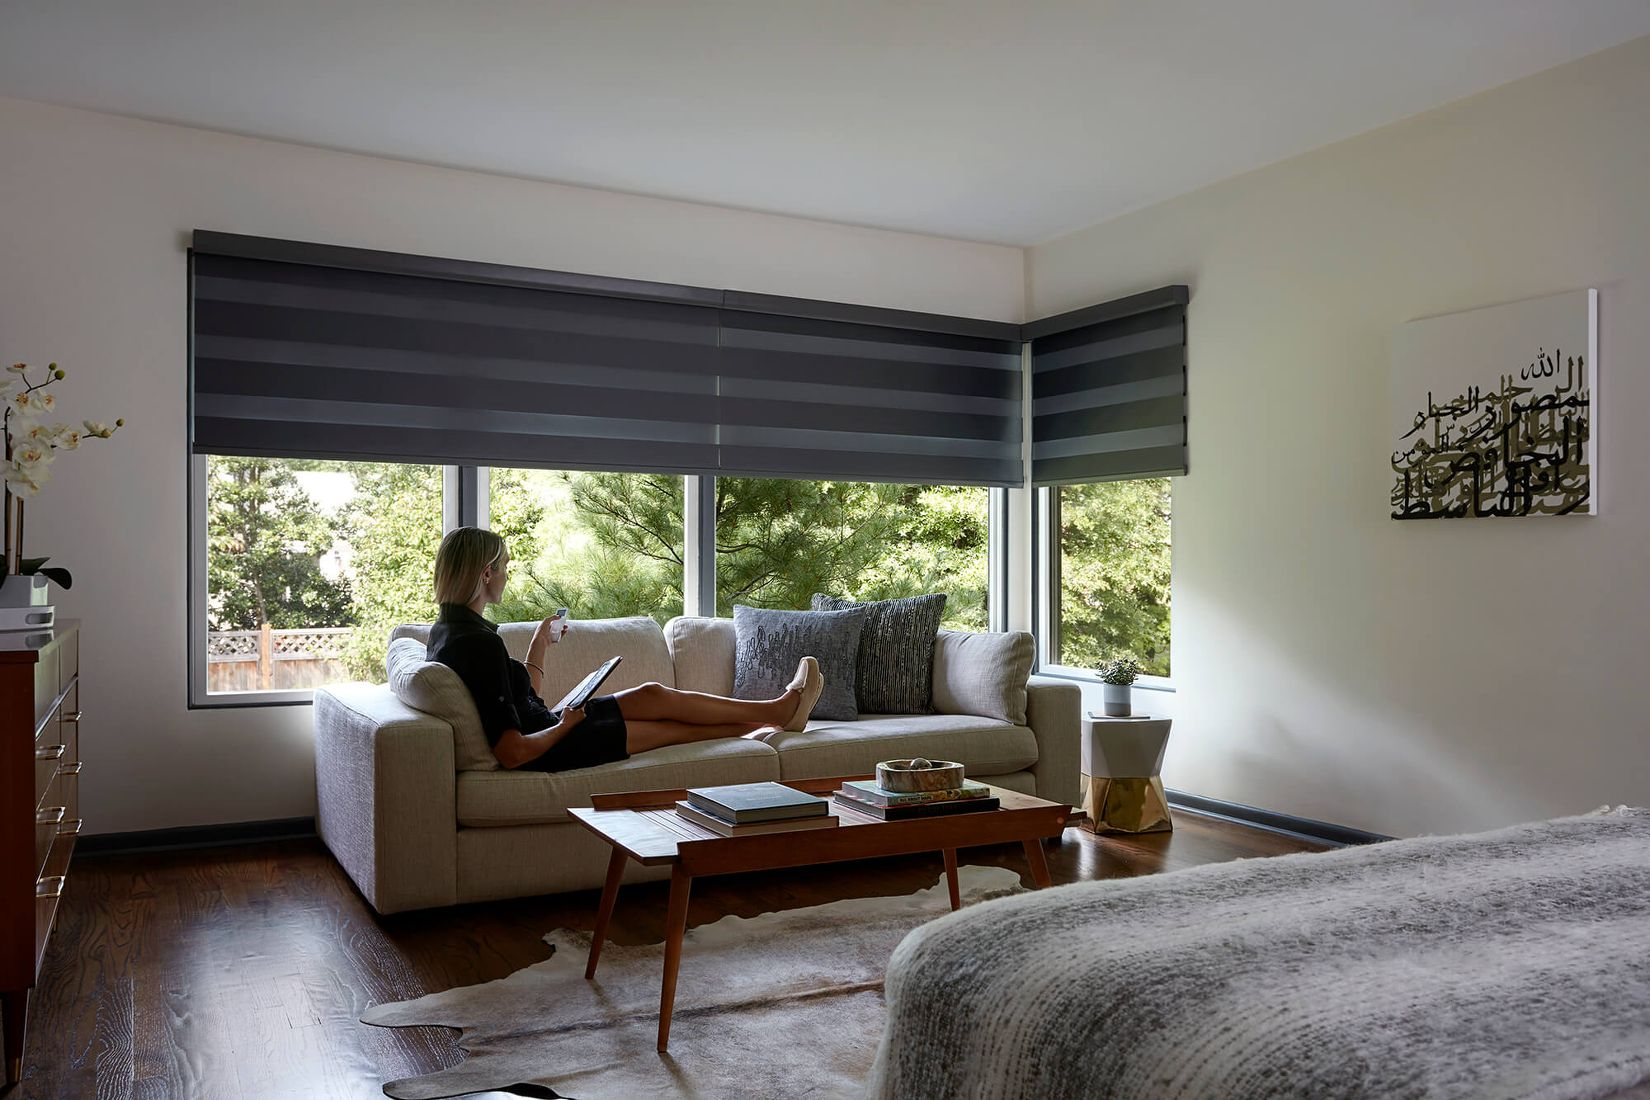 motorized blinds motorized. blinds and shades HUIYMLA